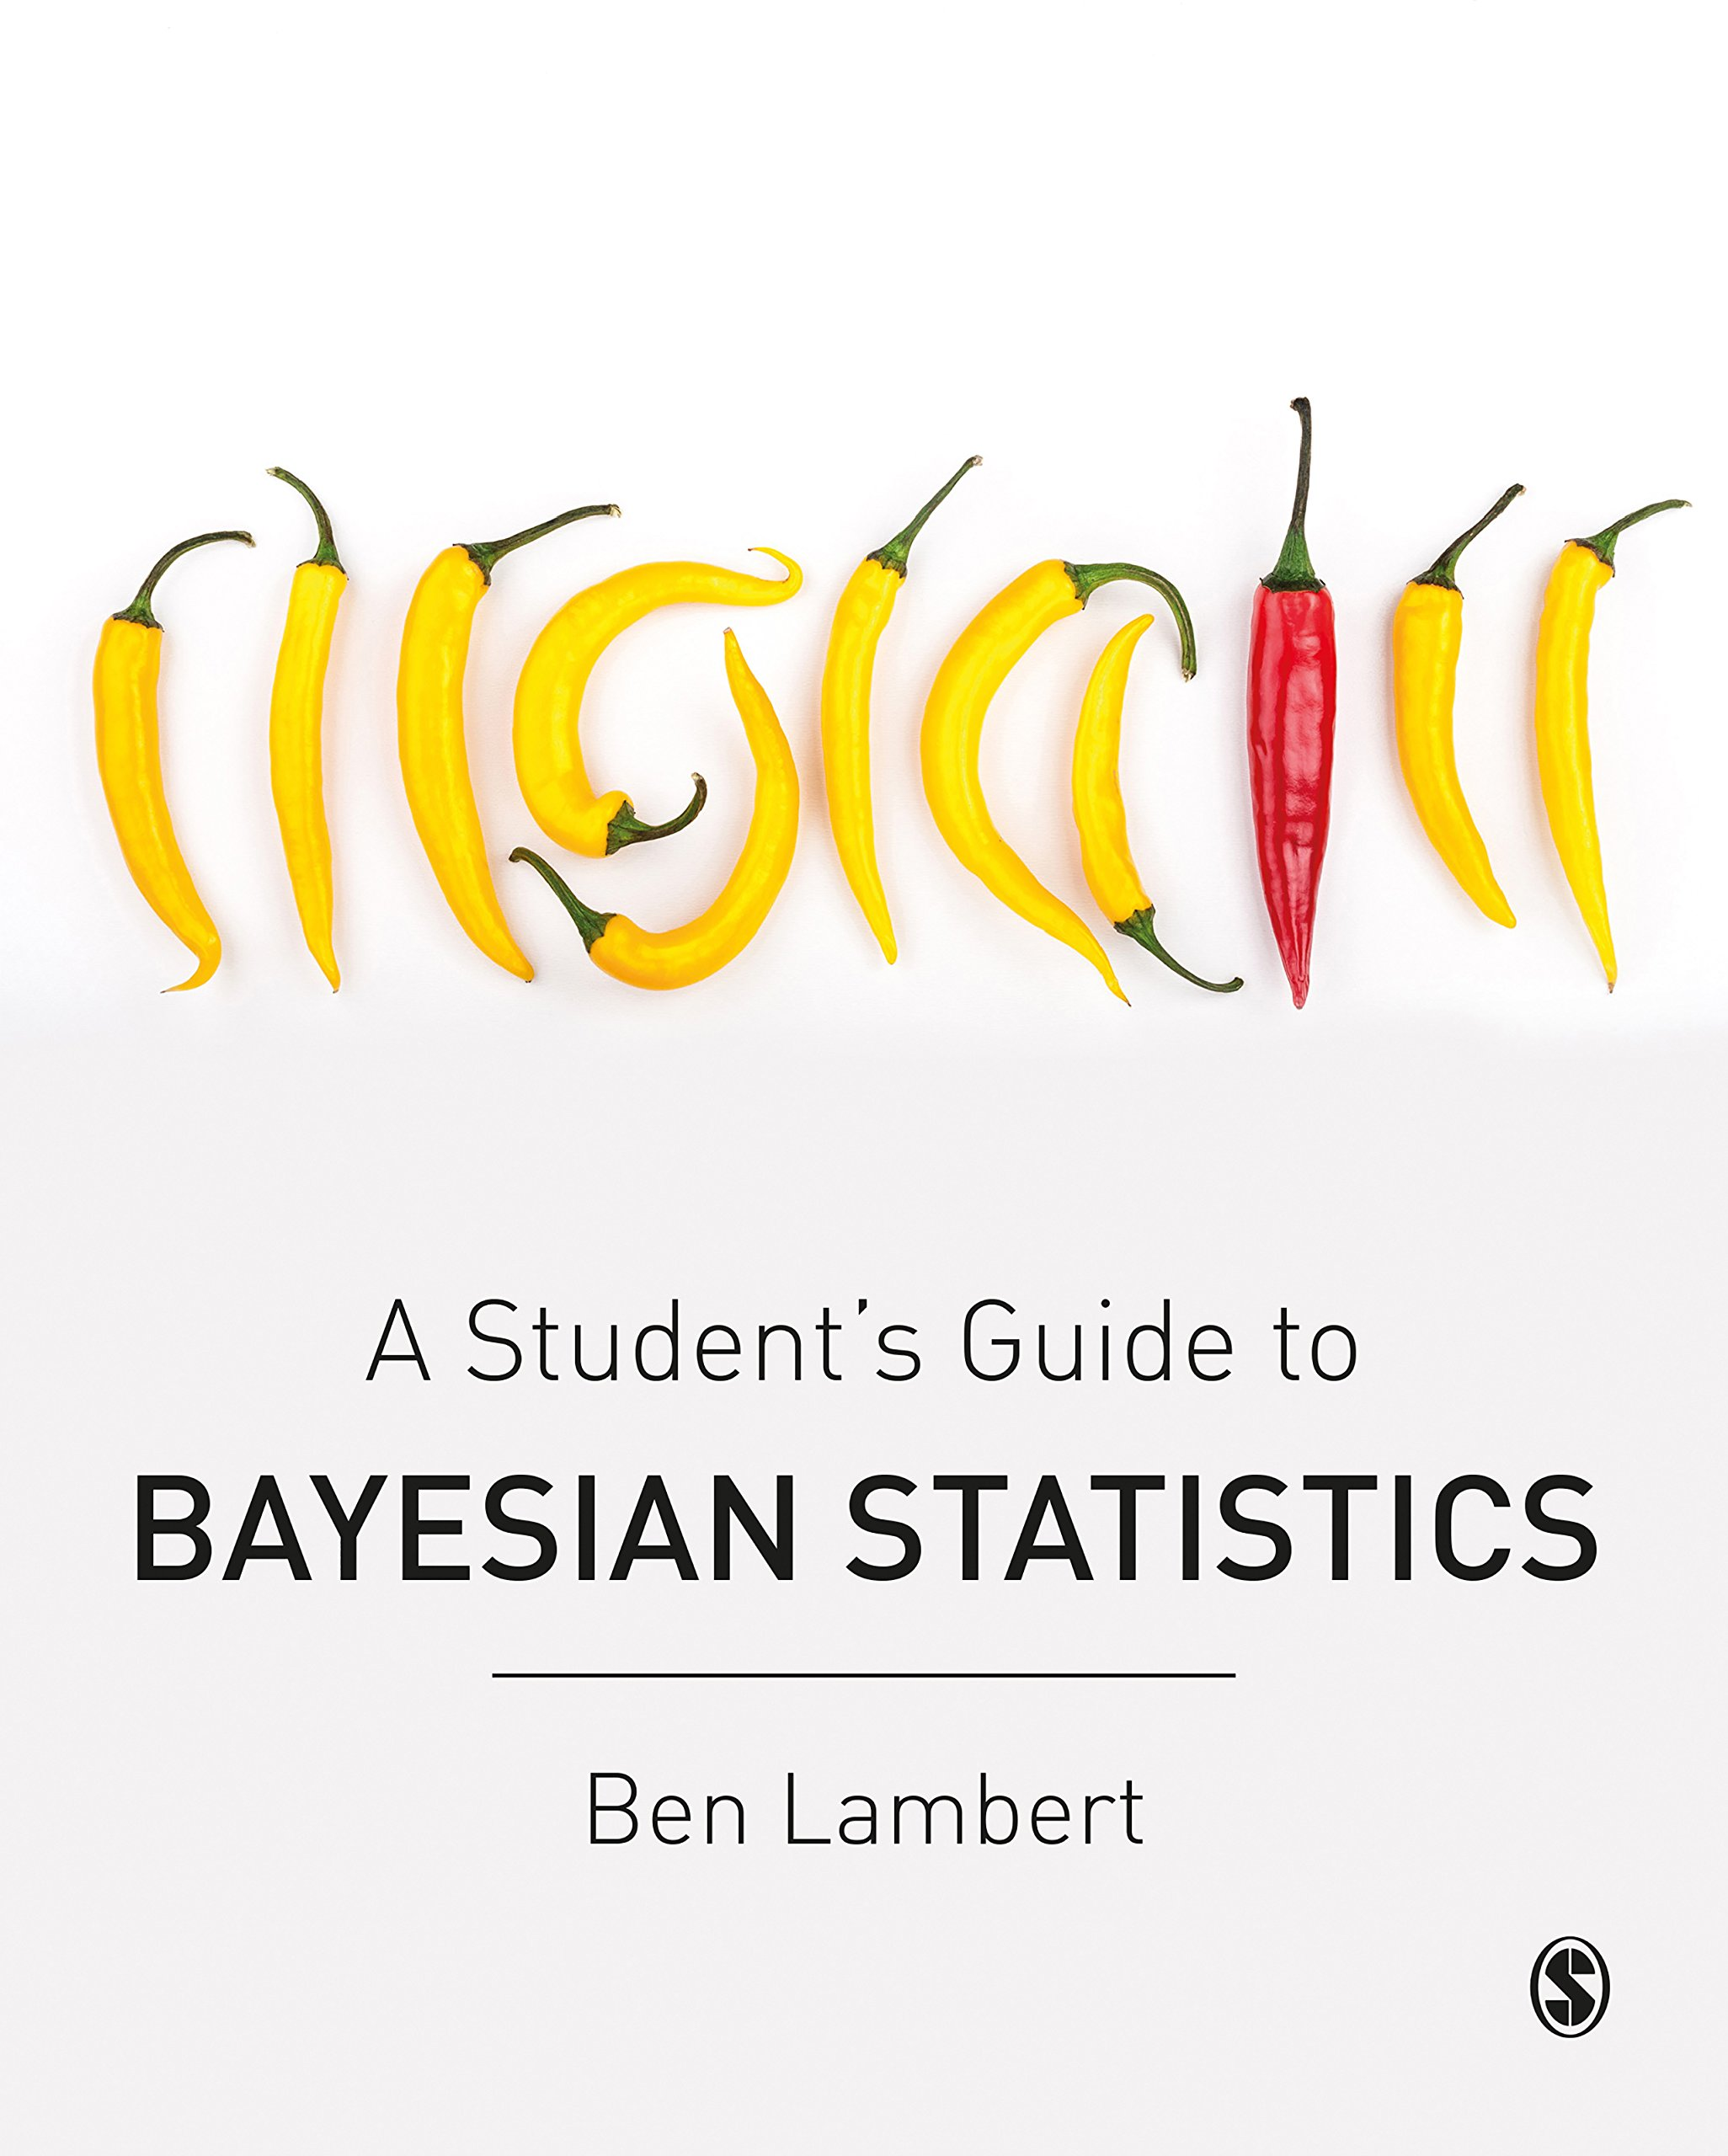 Image OfA Student's Guide To Bayesian Statistics (English Edition)